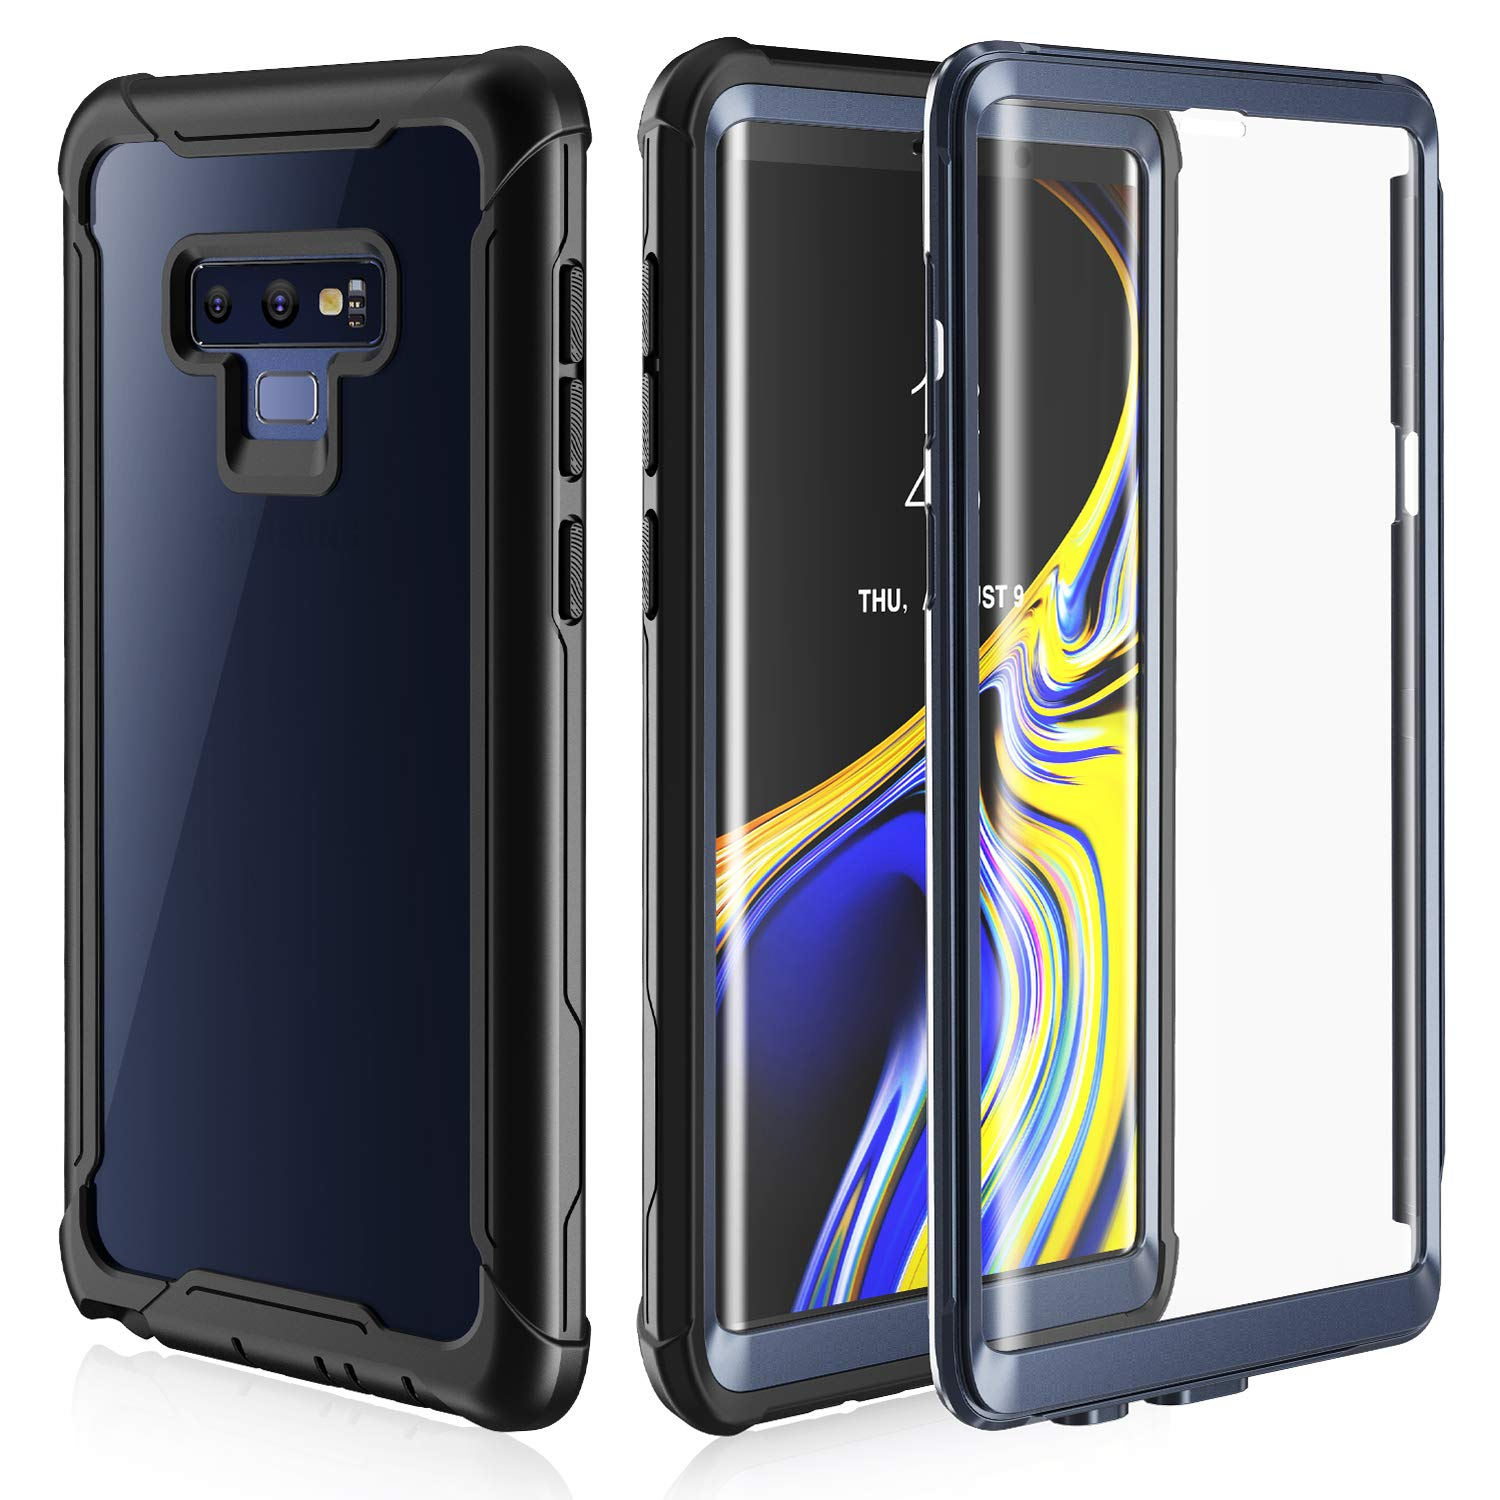 Samsung Galaxy Note 9 Cell Phone Case - Full Body Case with Built-in Touch Sensitive Anti-Scratch Screen Protector, Ultra Thin Clear Shock Drop Proof Impact Resist Extreme Durable Protective Cover FITFORT